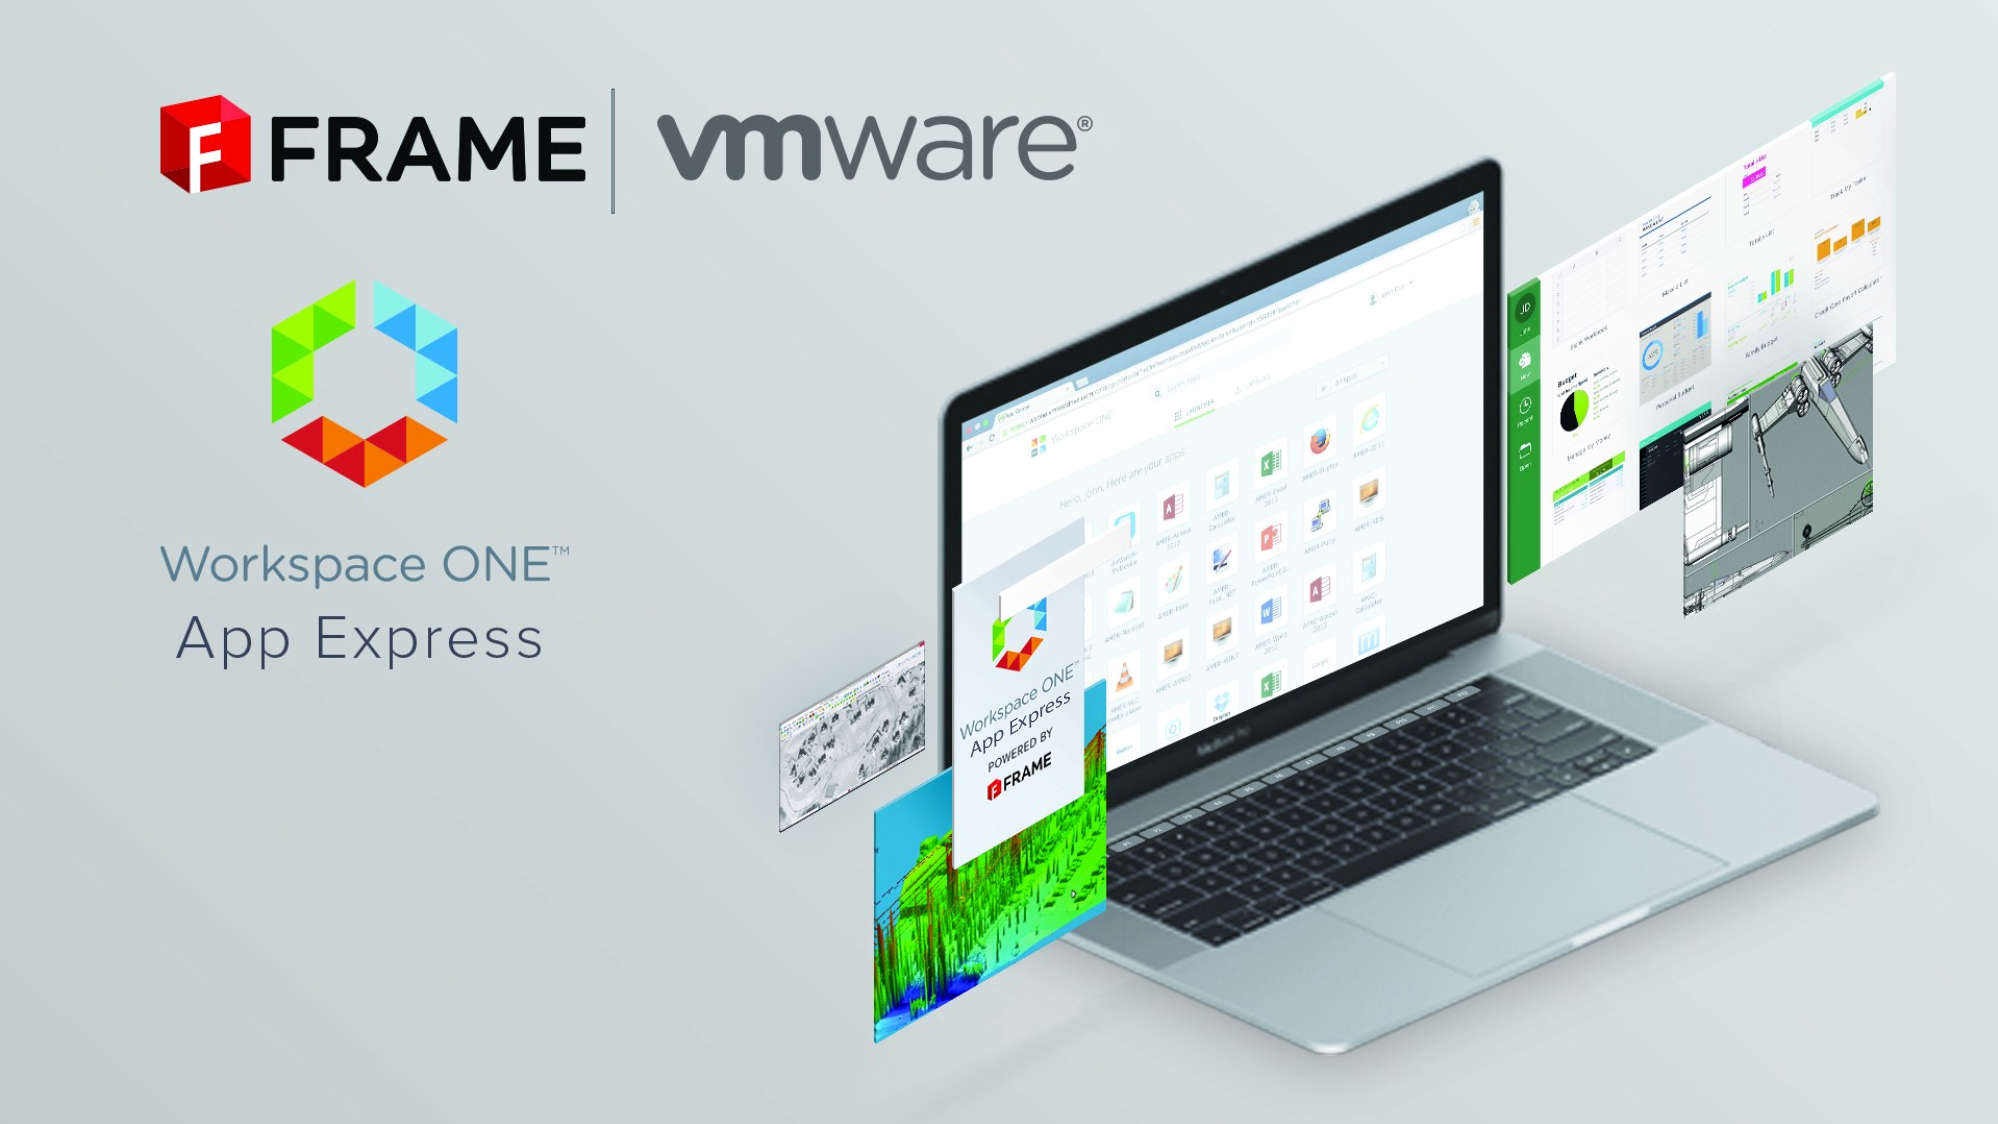 Frame and VMware Partner to Stream Windows Apps from the Cloud